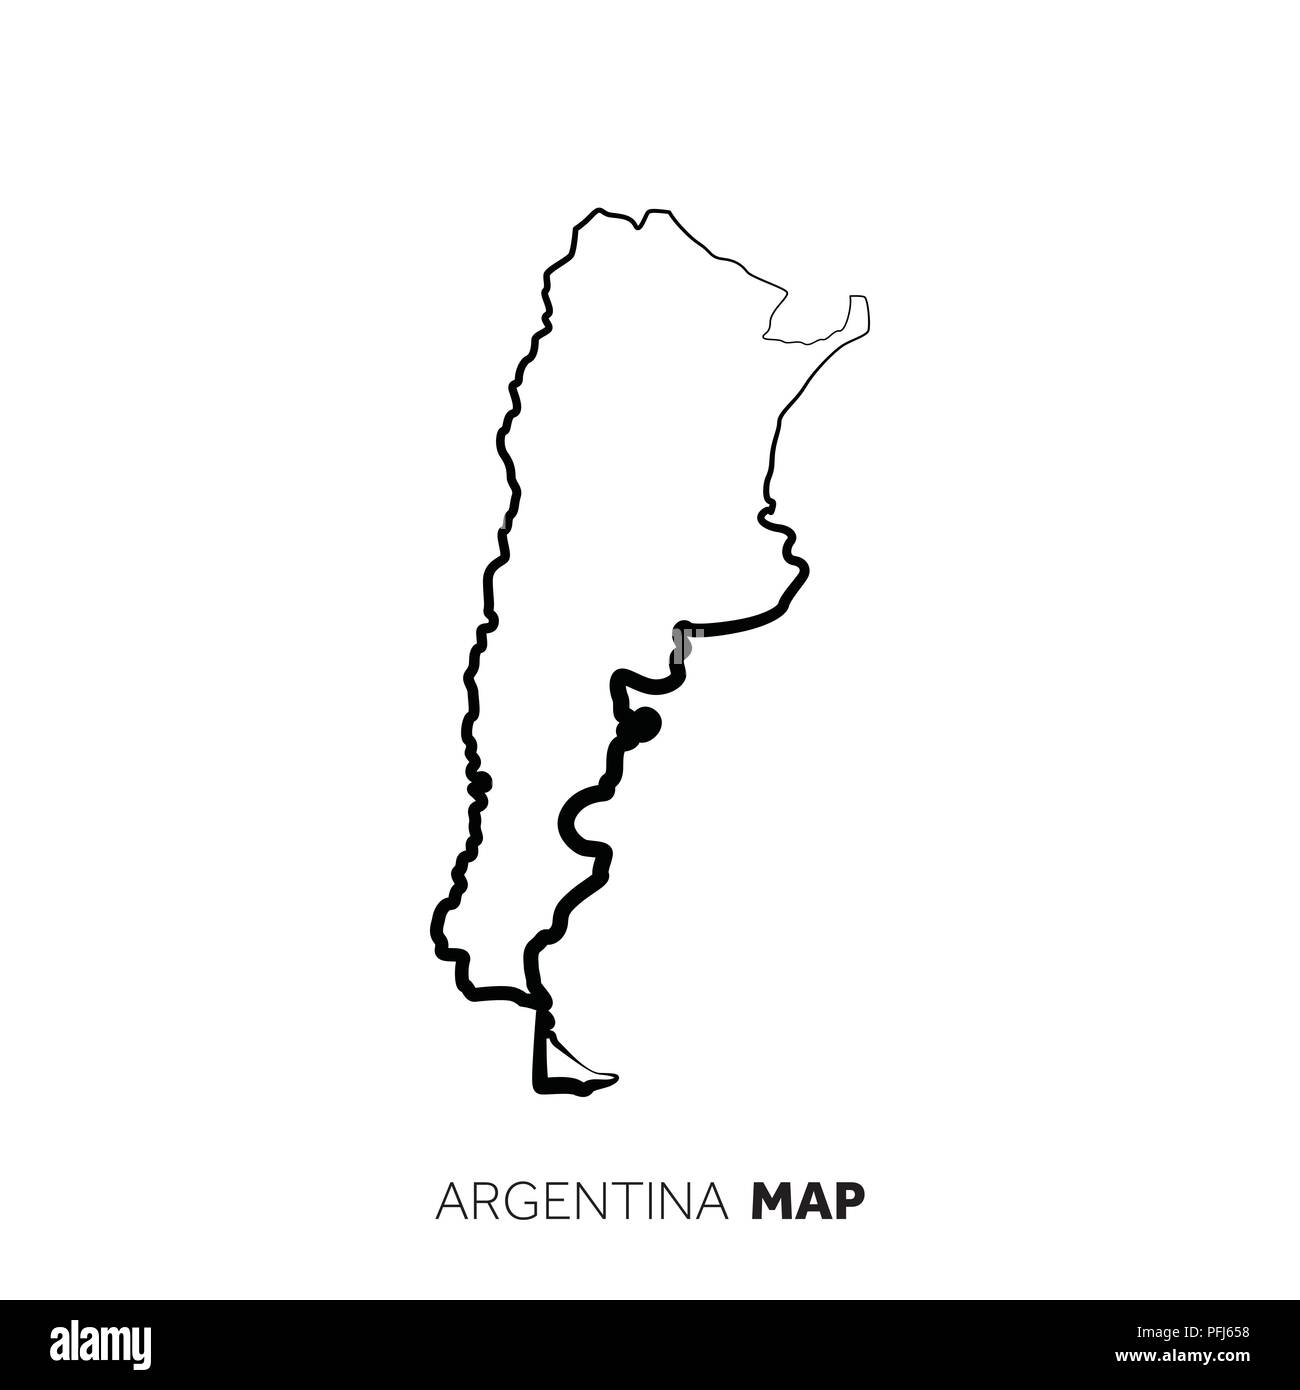 Argentina vector country map outline. Black line on white background Stock Vector